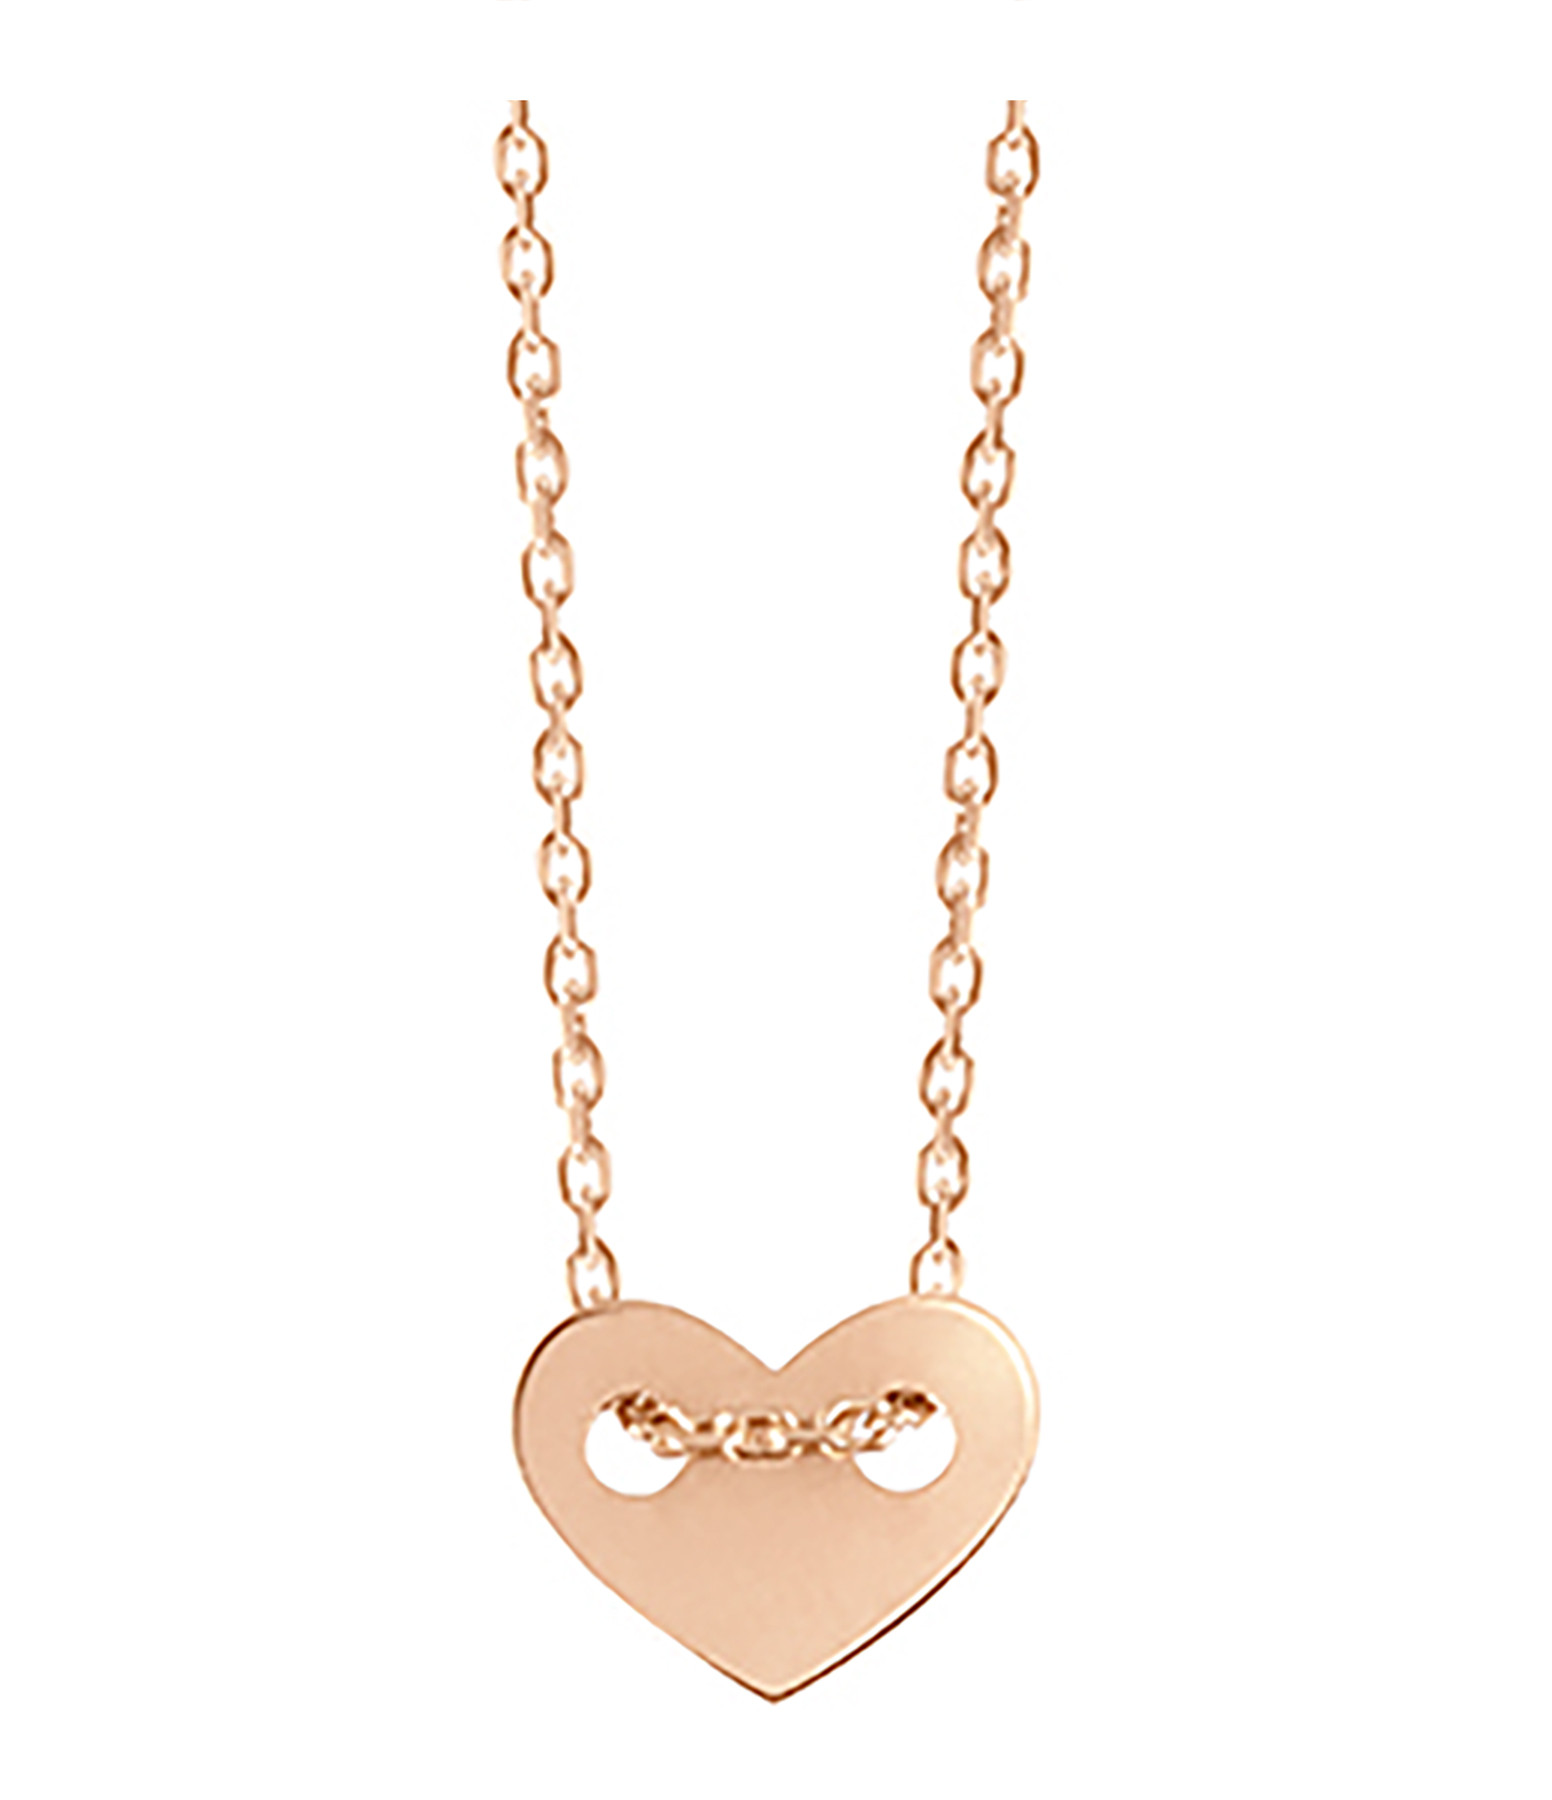 VANRYCKE - Collier Angie XS Or Rose